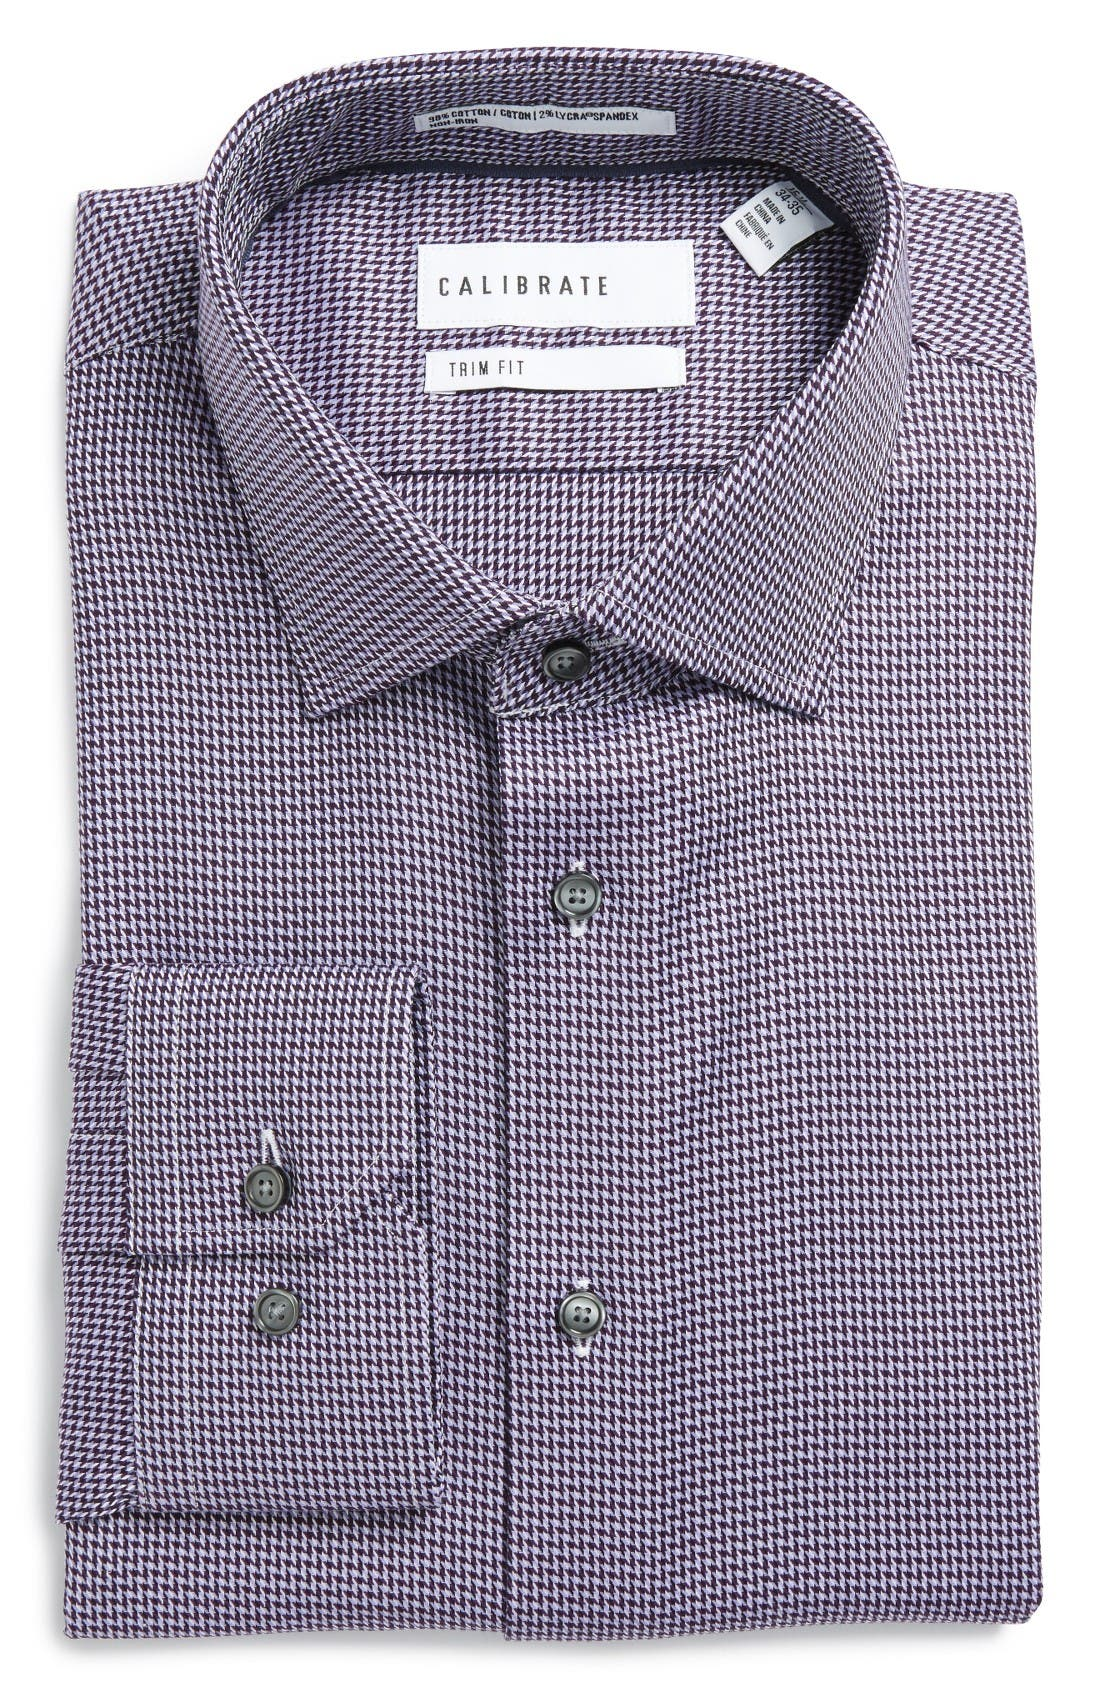 CALIBRATE Trim Fit Non-Iron Houndstooth Stretch Dress Shirt